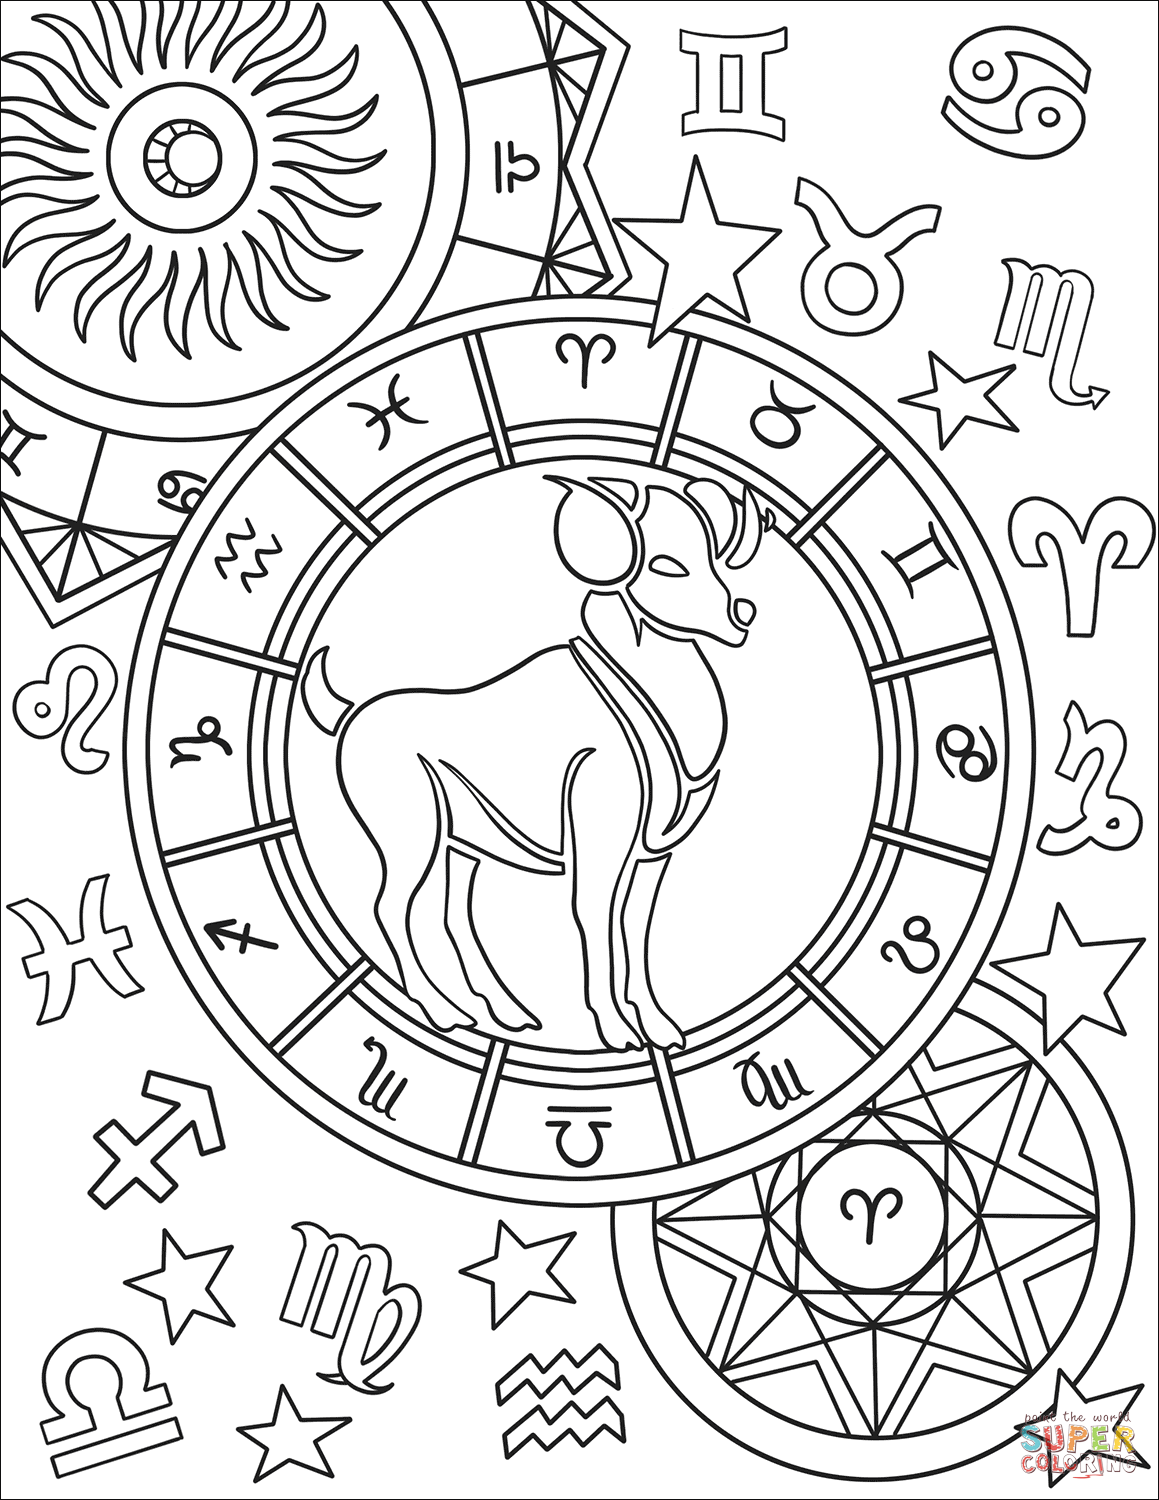 zodiac coloring pages chinese zodiac coloring page coloring zodiac pages